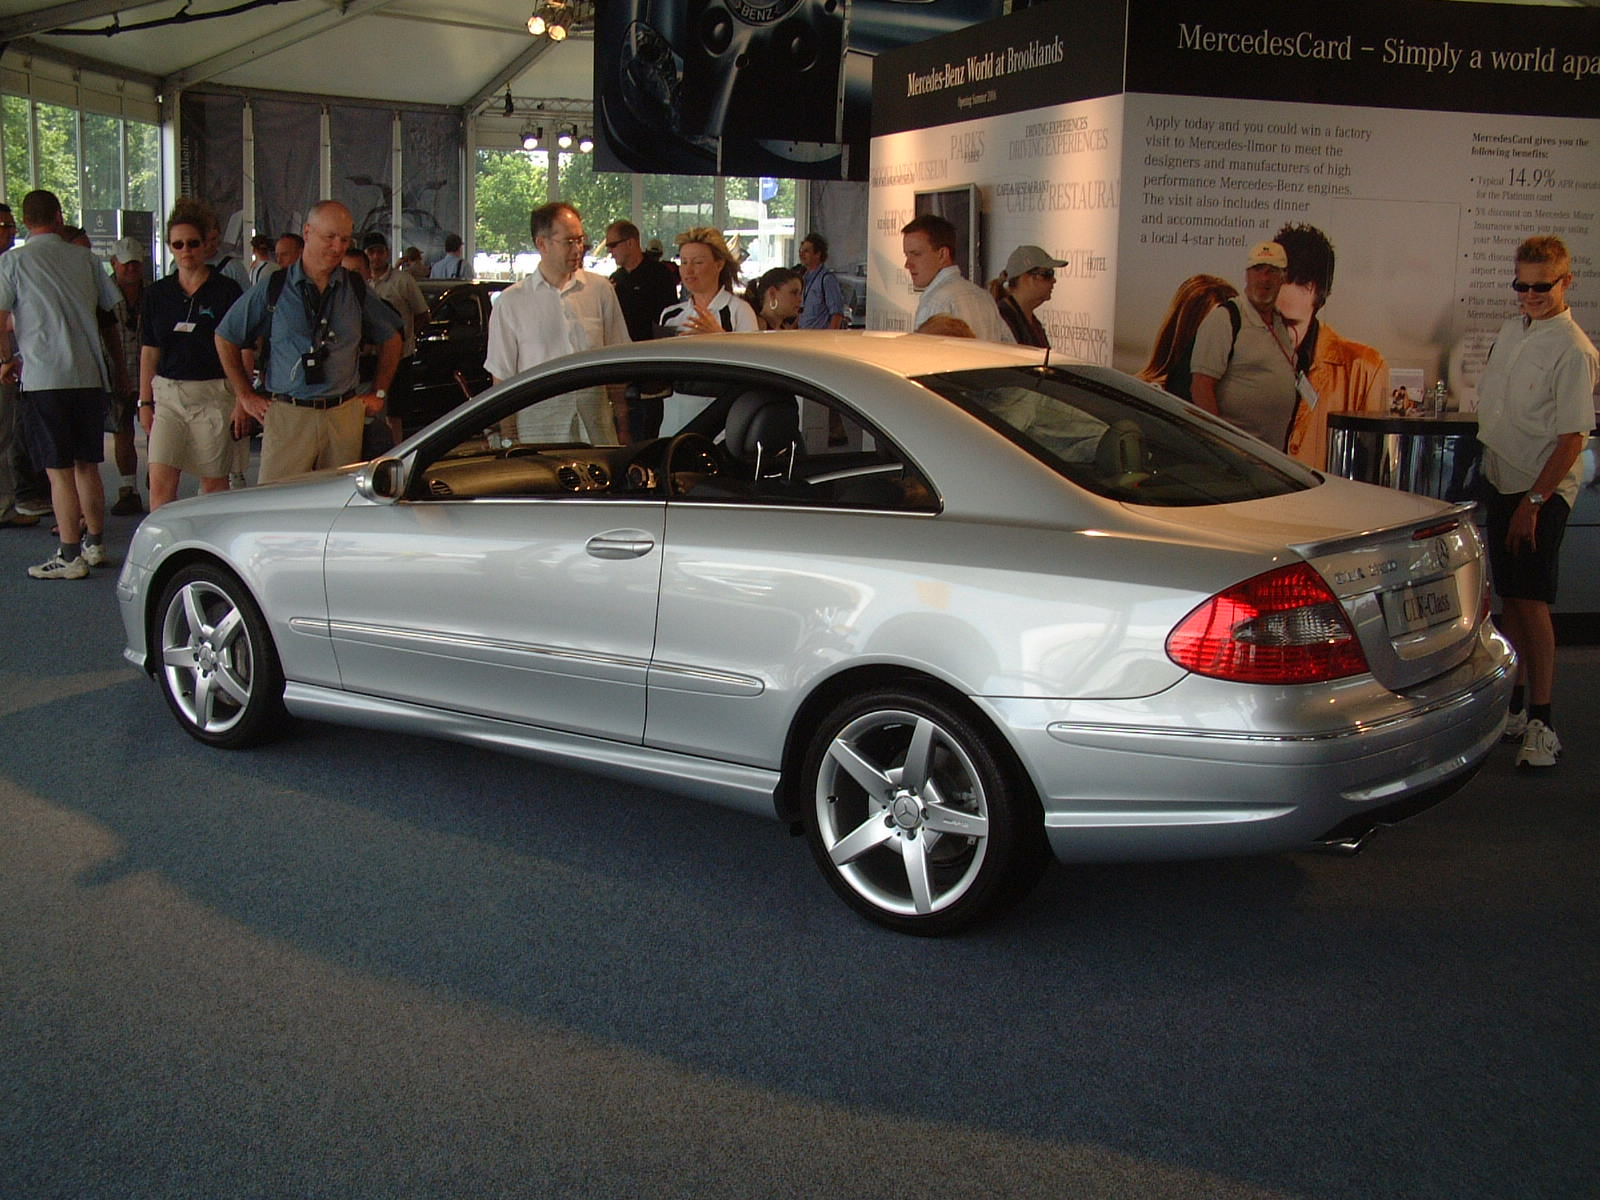 Goodwood Festival of Speed Mercedes-Benz CLK